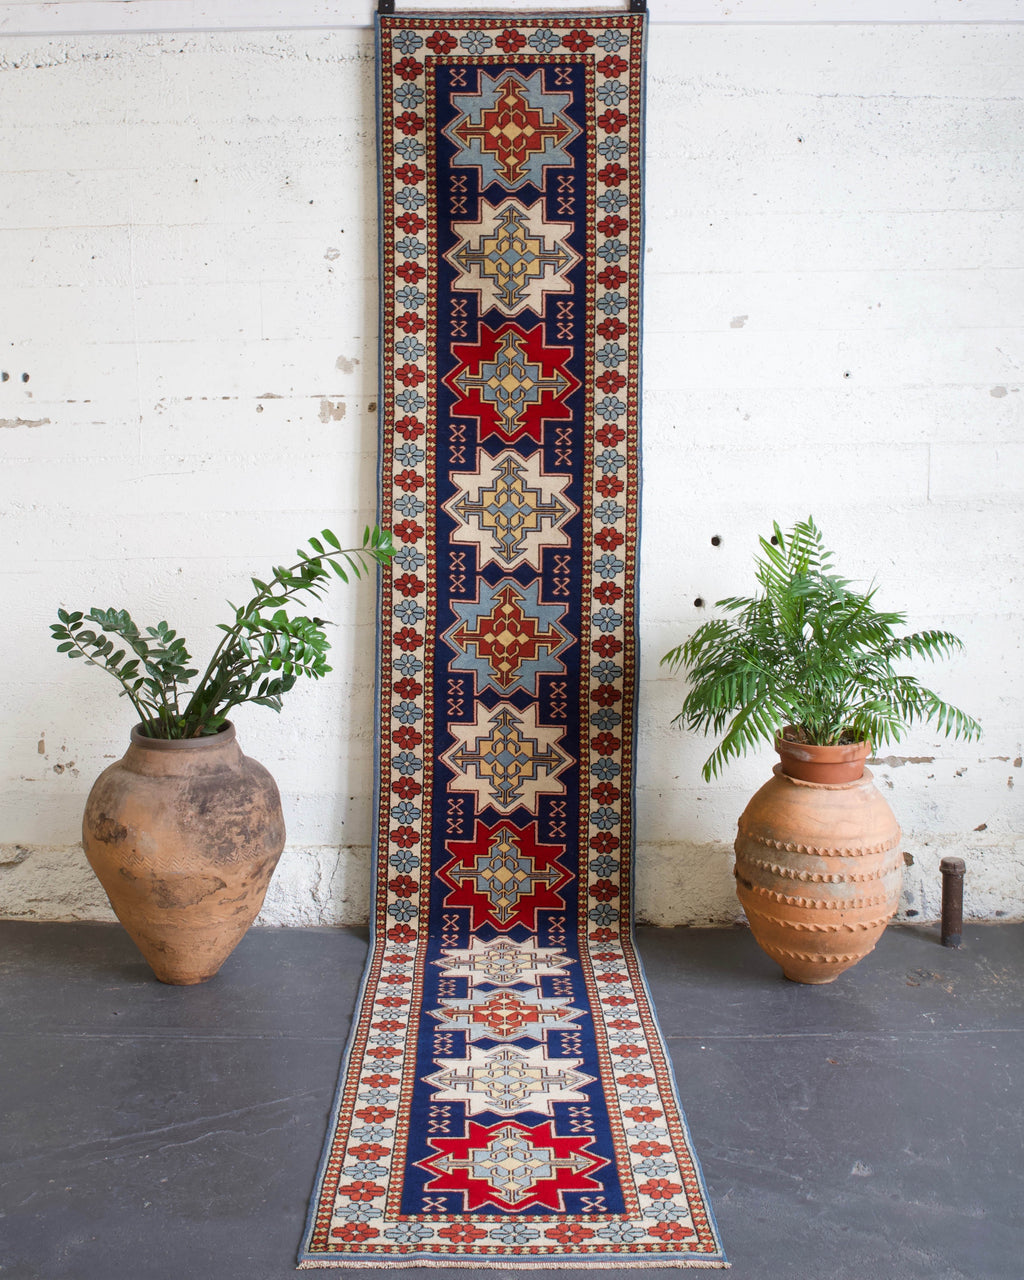 pile rug runner, Turkish rug, vintage rug, portland, rug shop, bright colors, wild shaman, runner rug, bold color, Portland, Oregon, rug store, rug shop, local shop, hallway runner, skinny runner